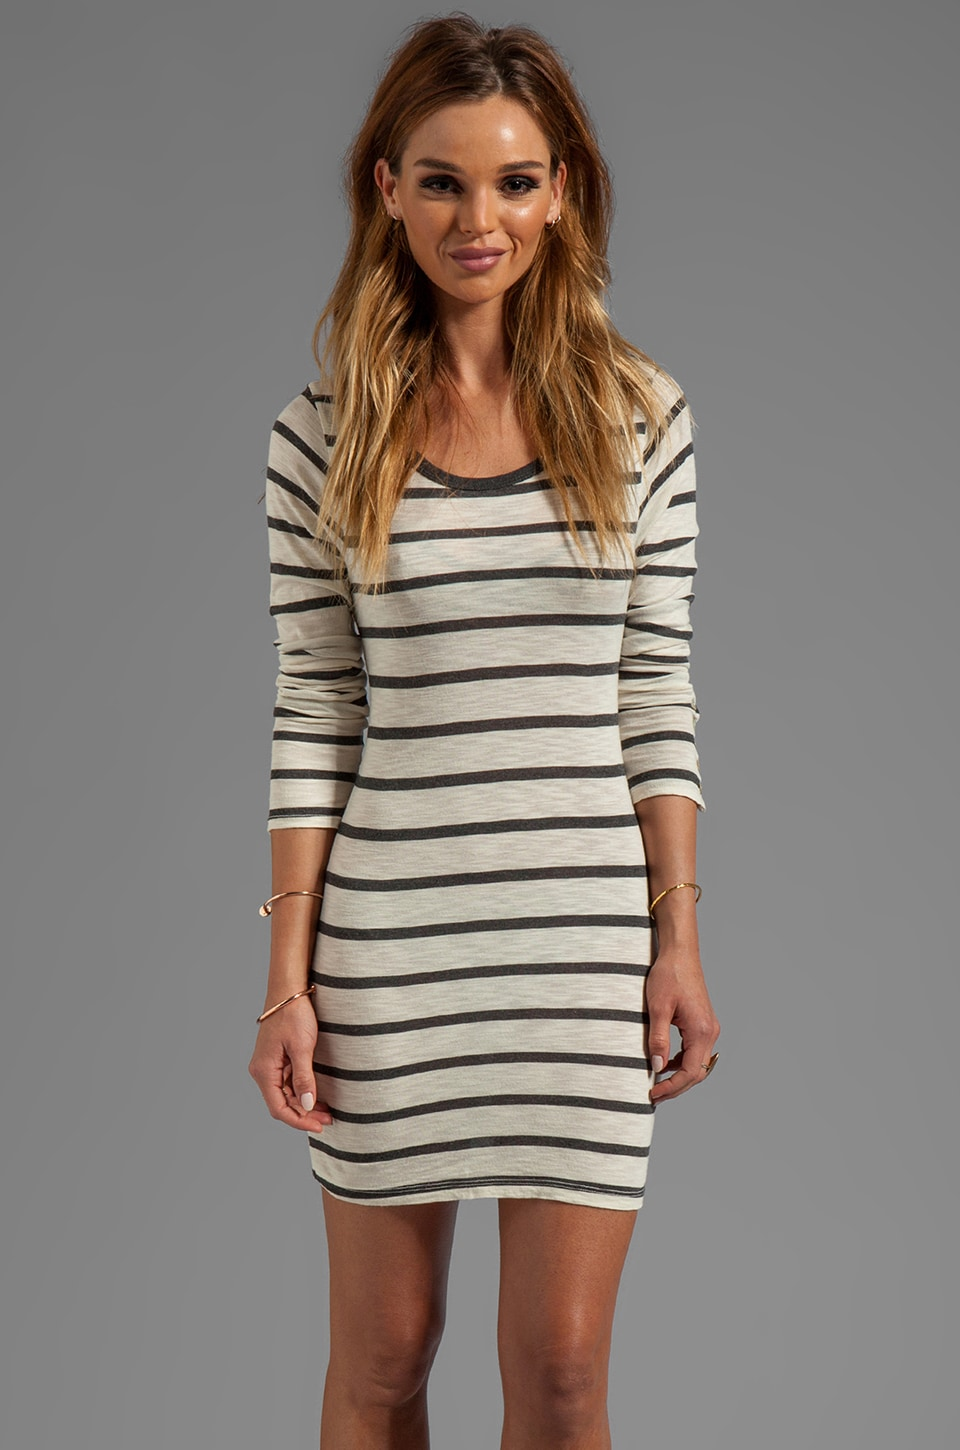 Velvet by Graham & Spencer Fern Charcoal Slub Stripe Long Sleeve Dress in Cream